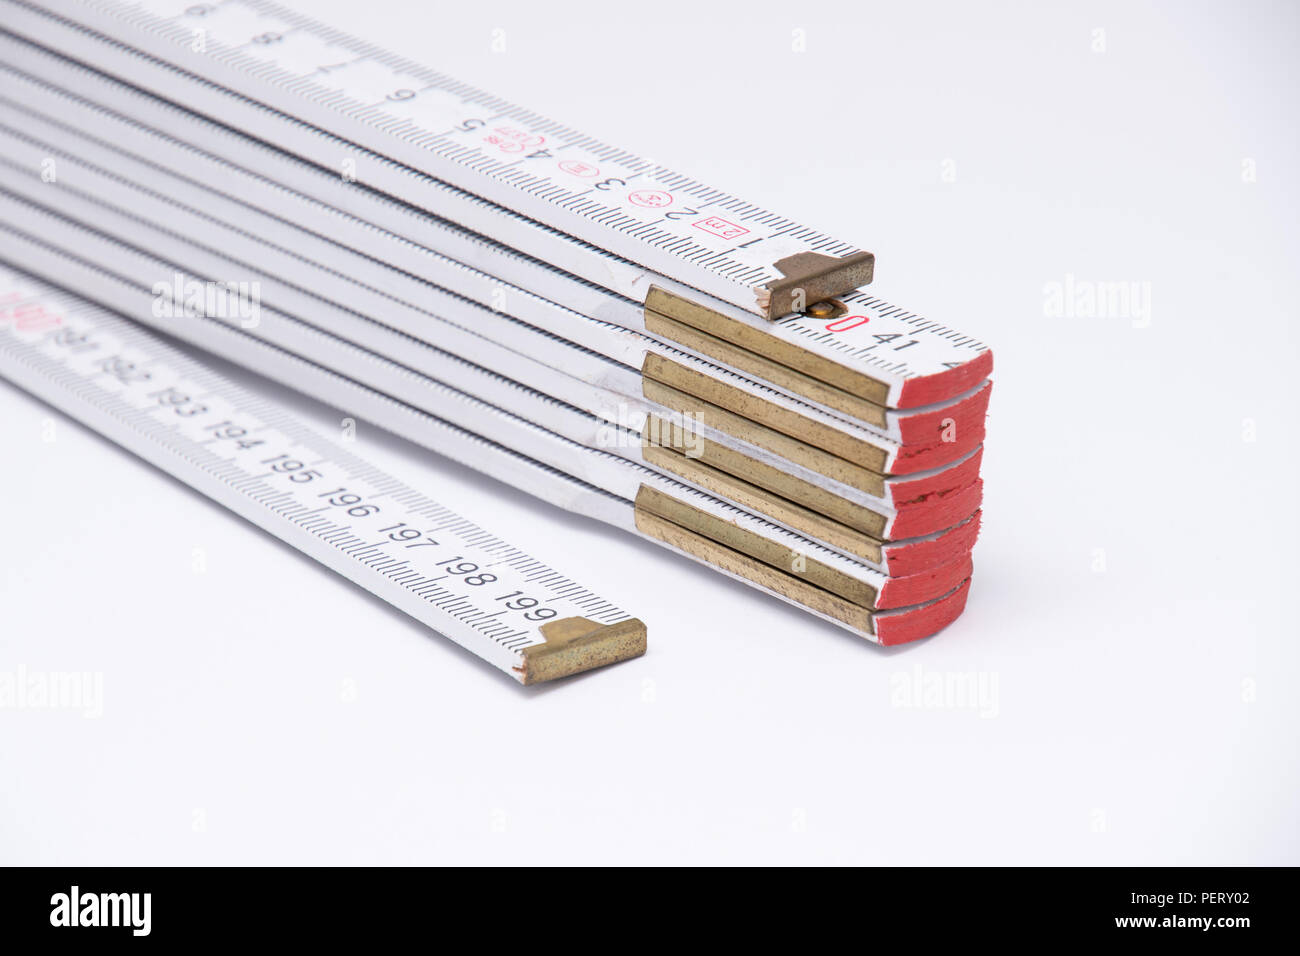 Meter stick yard stick double meter stick in white - Stock Image